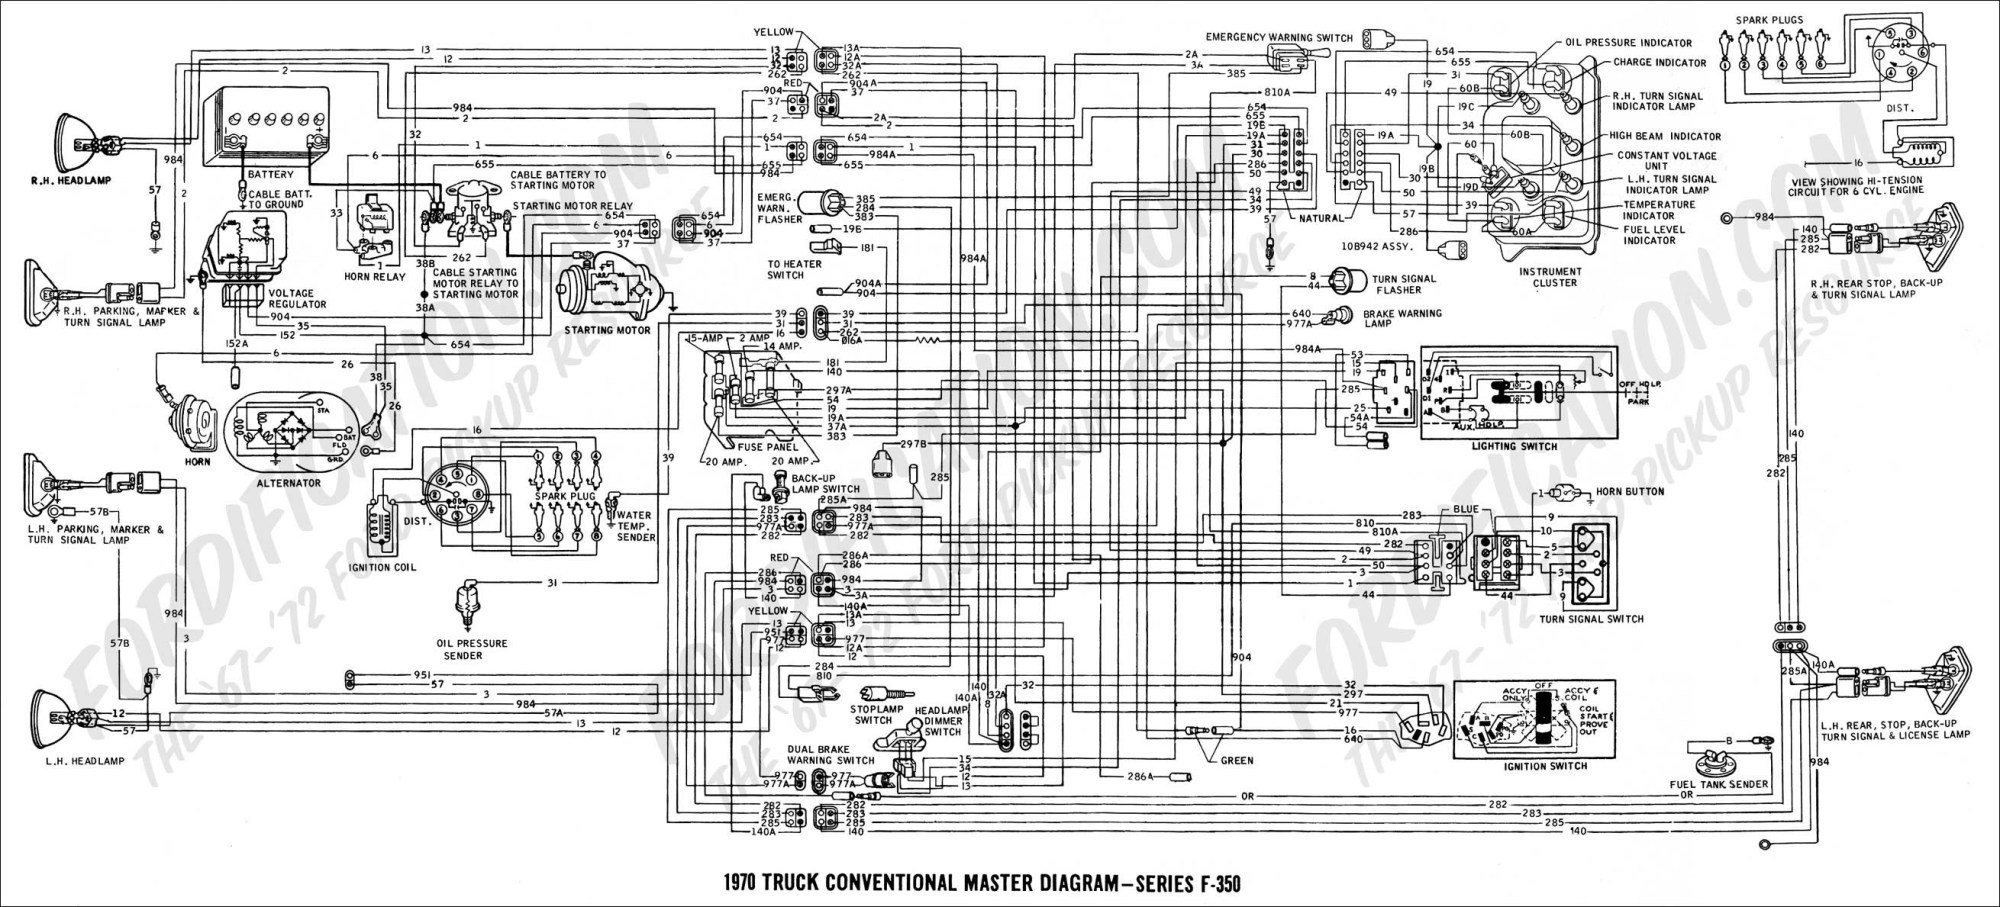 hight resolution of ford f350 wiring schematic wiring diagram img 1995 ford f350 wiring schematic wiring diagrams 2008 ford